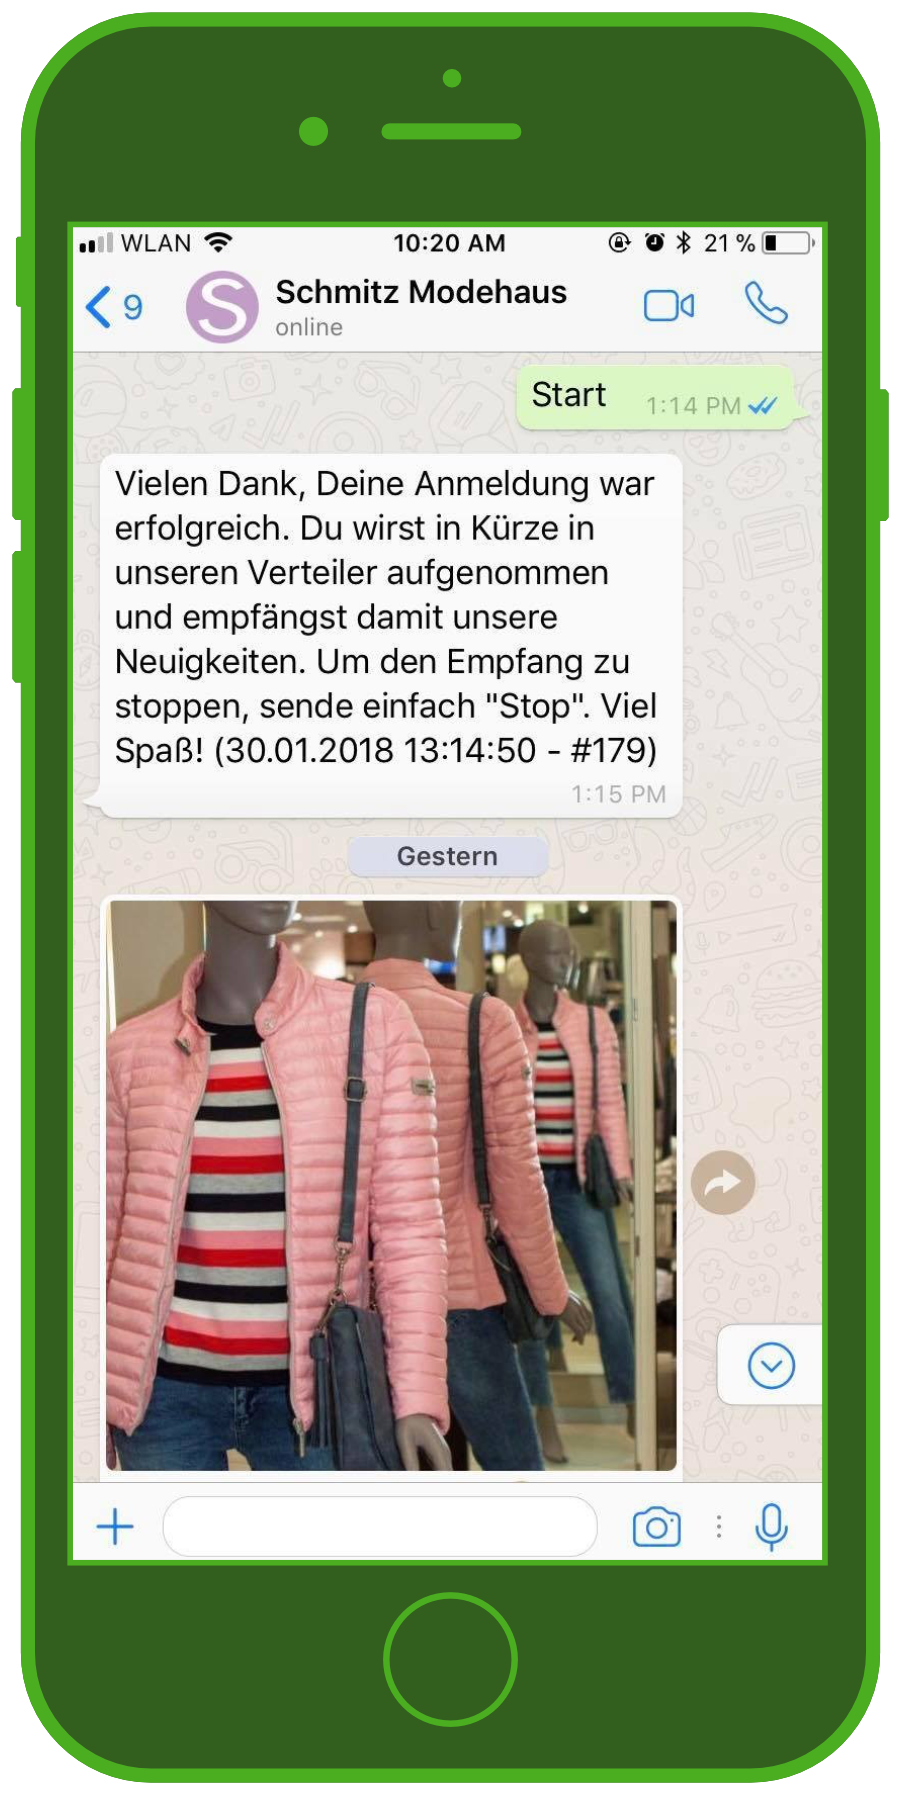 device-modehaus-schmitz-whatsapp-screenshot-fashion